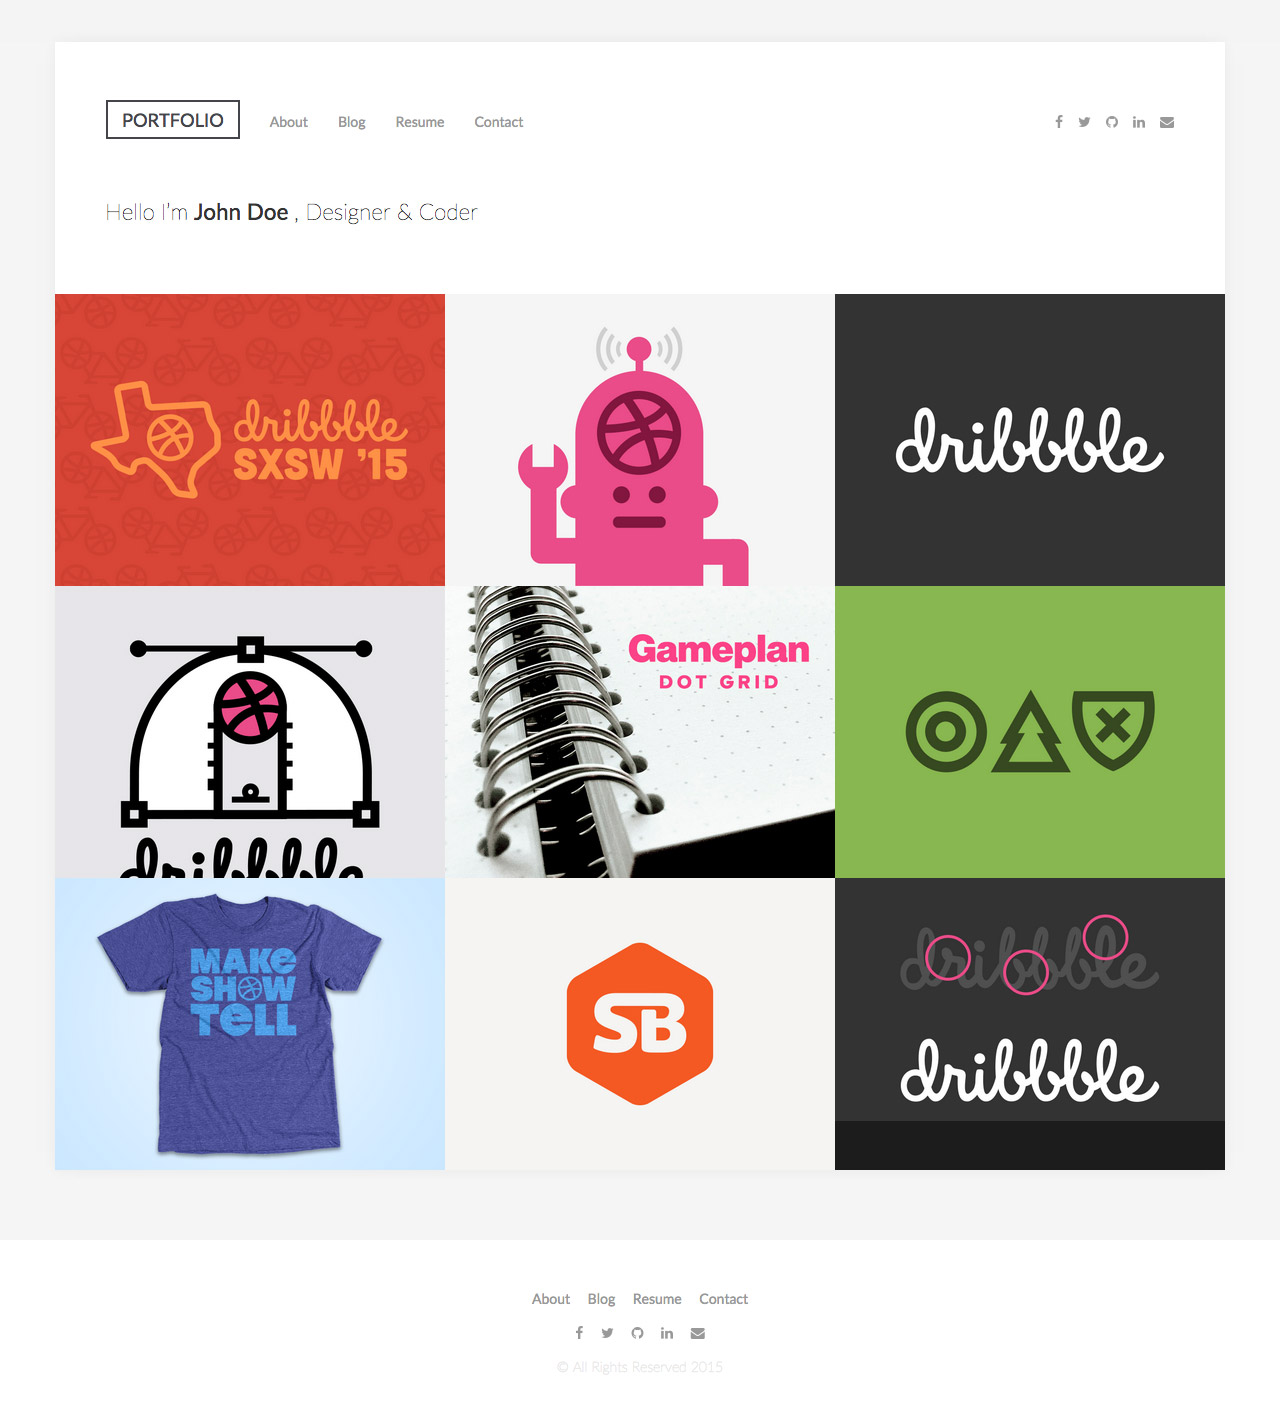 DribbbleFolio Website Screenshot